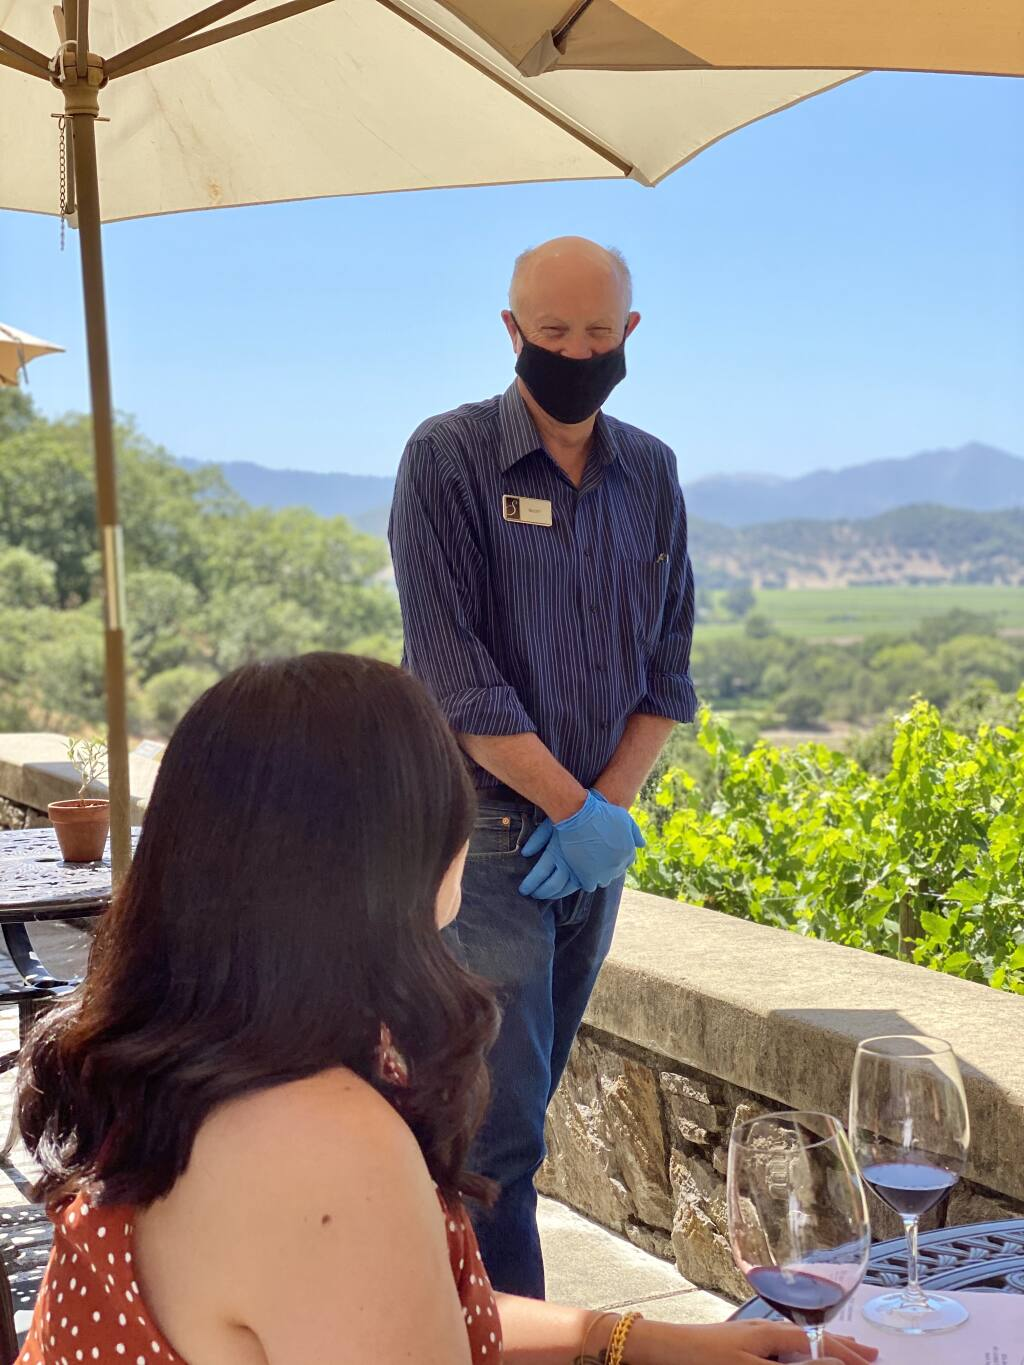 A Silverado Vineyards staff member serves a visitor July 2, 2020, on one of the outdoor terraces overlooking Napa Valley. (courtesy photo)